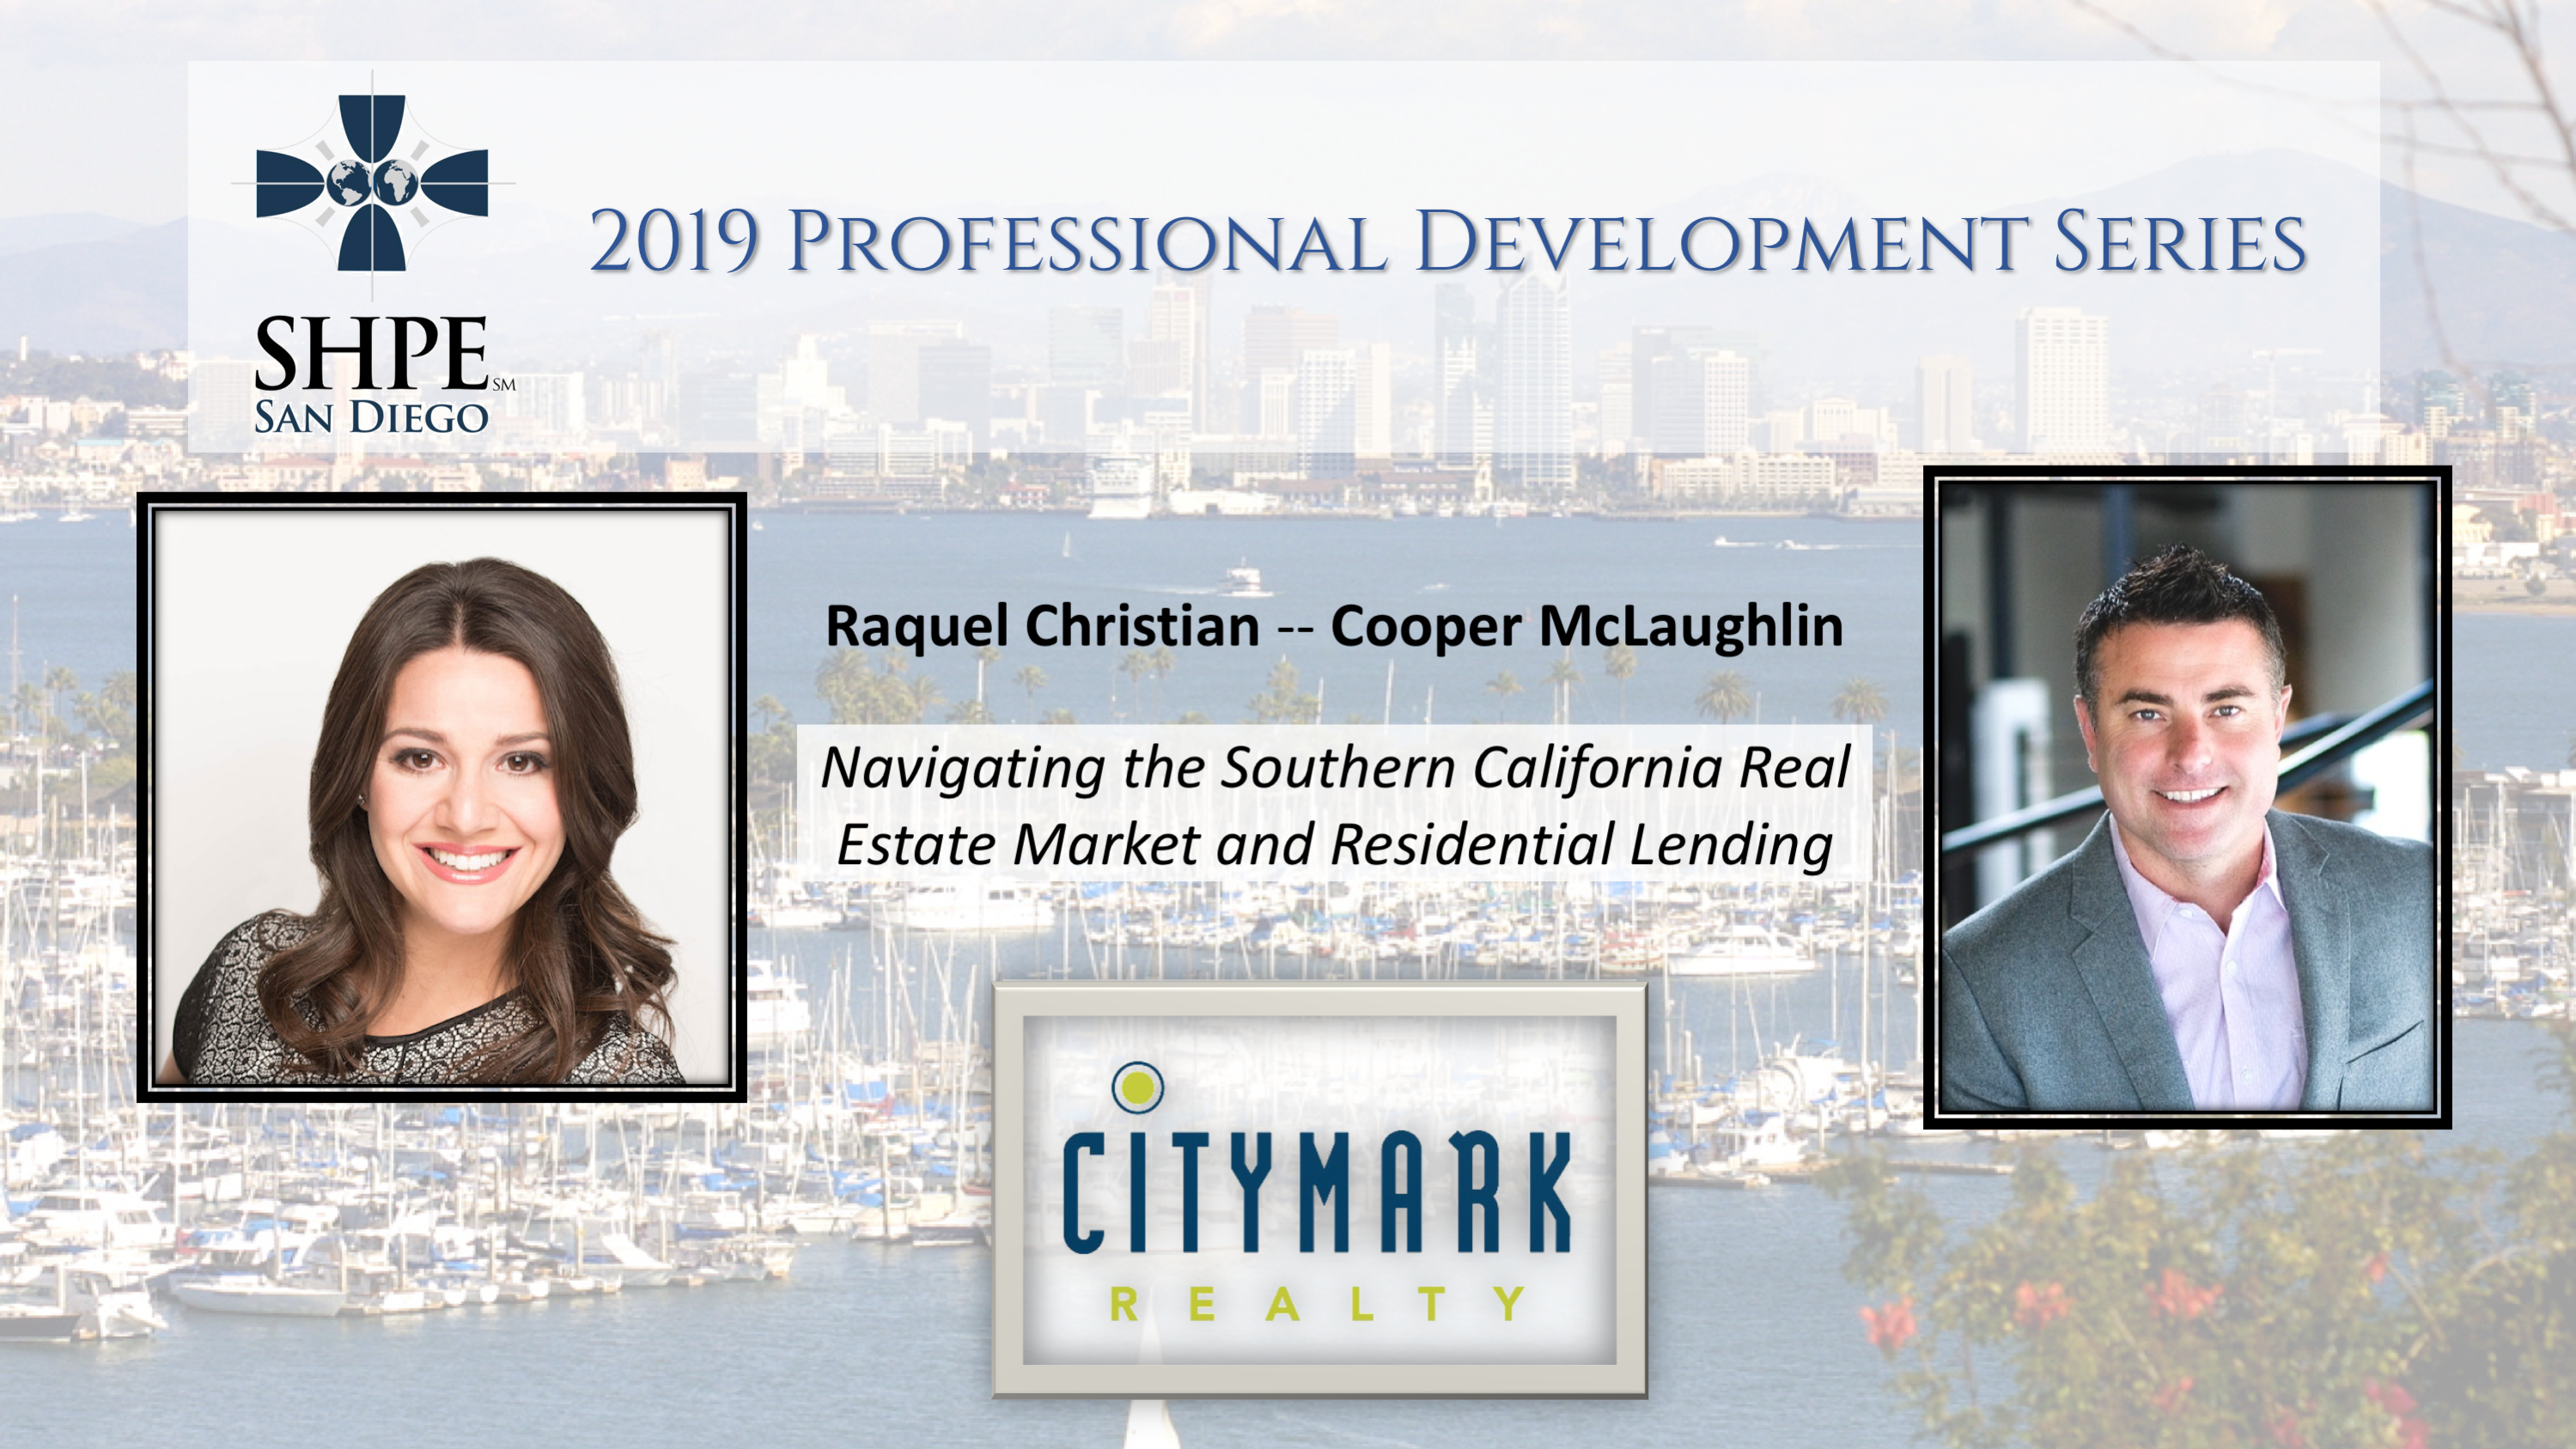 2019 Professional Series – Real Estate and Residential Lending